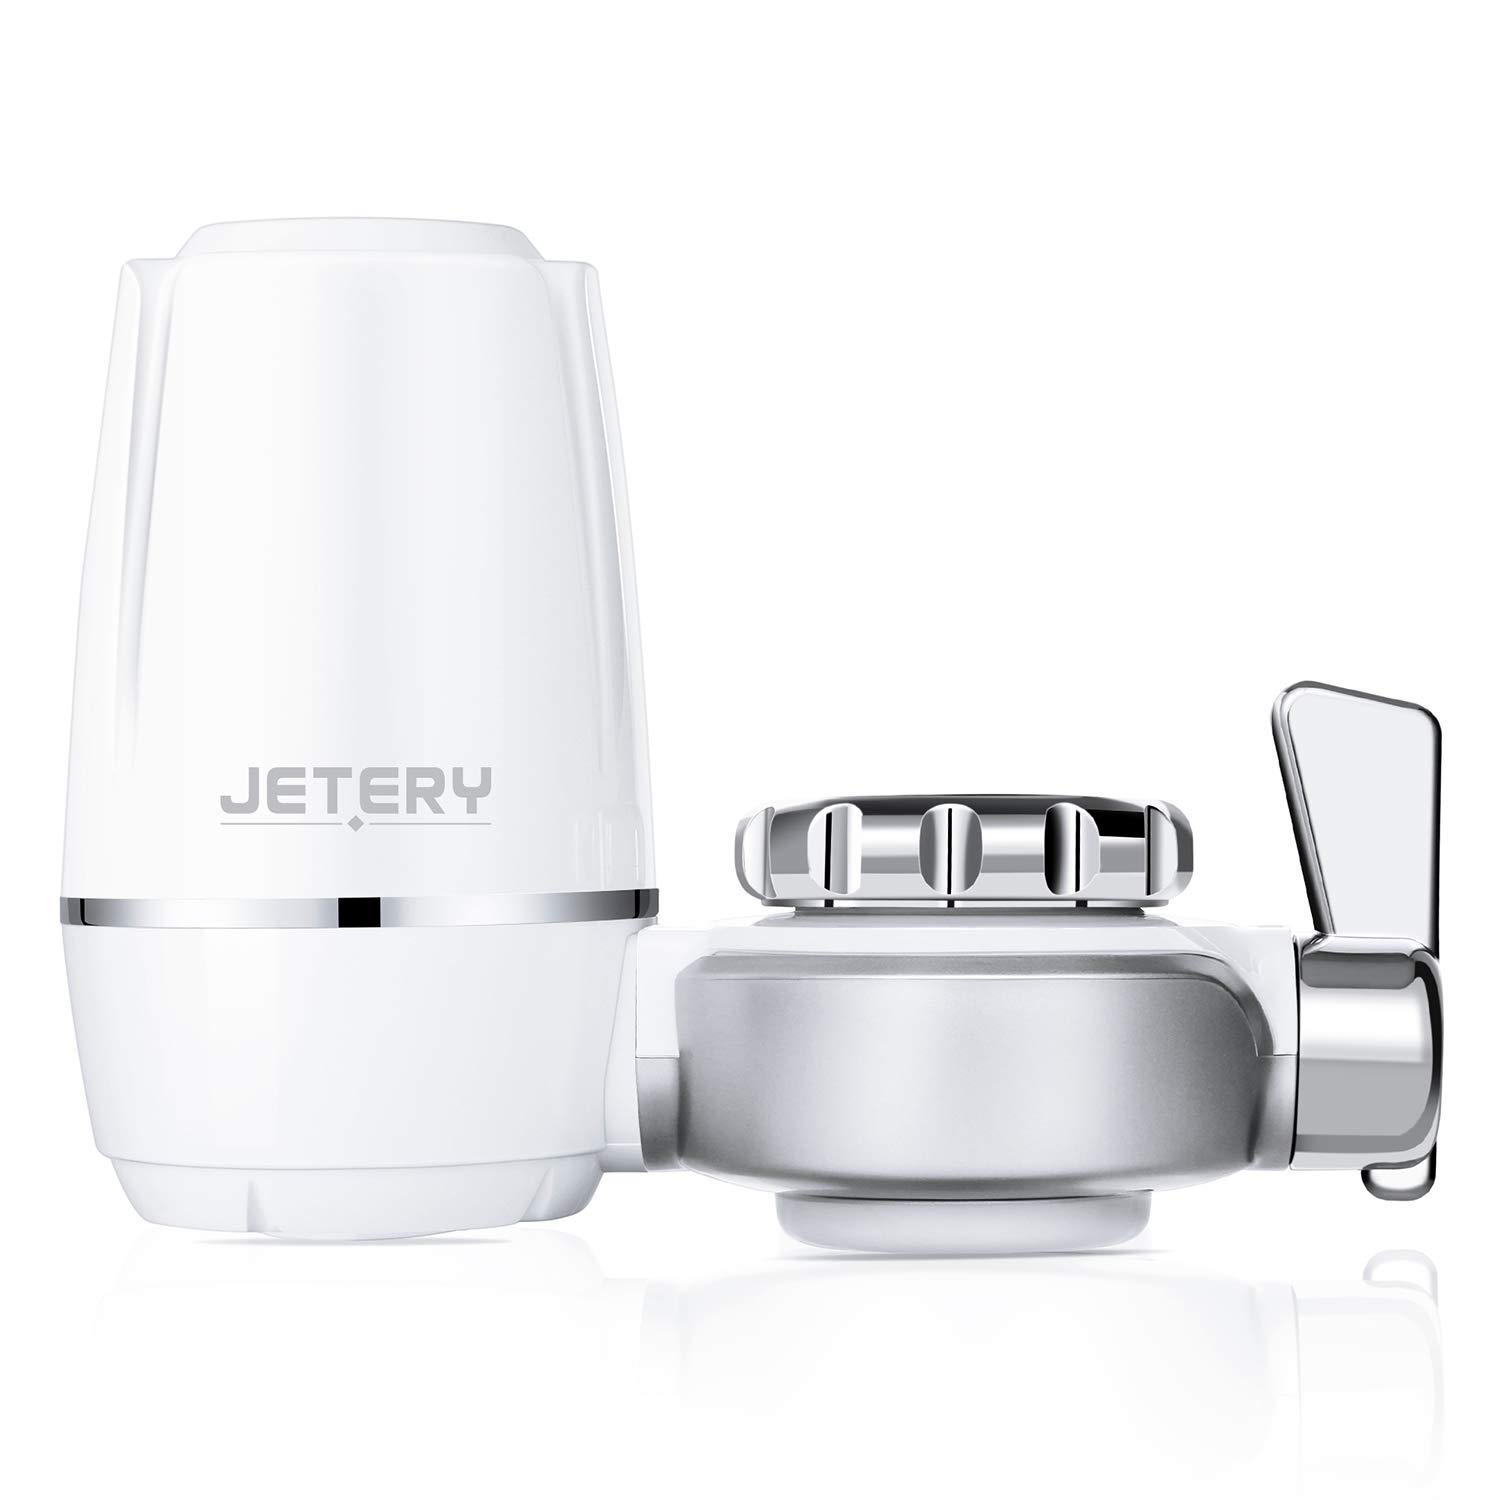 JETERY Faucet Water Filter - 320-Gallon Long-Lasting Tap Water Filtration System with Carbon Fiber Filter for Home Kitchen, Fits Standard Faucets, JT-5140